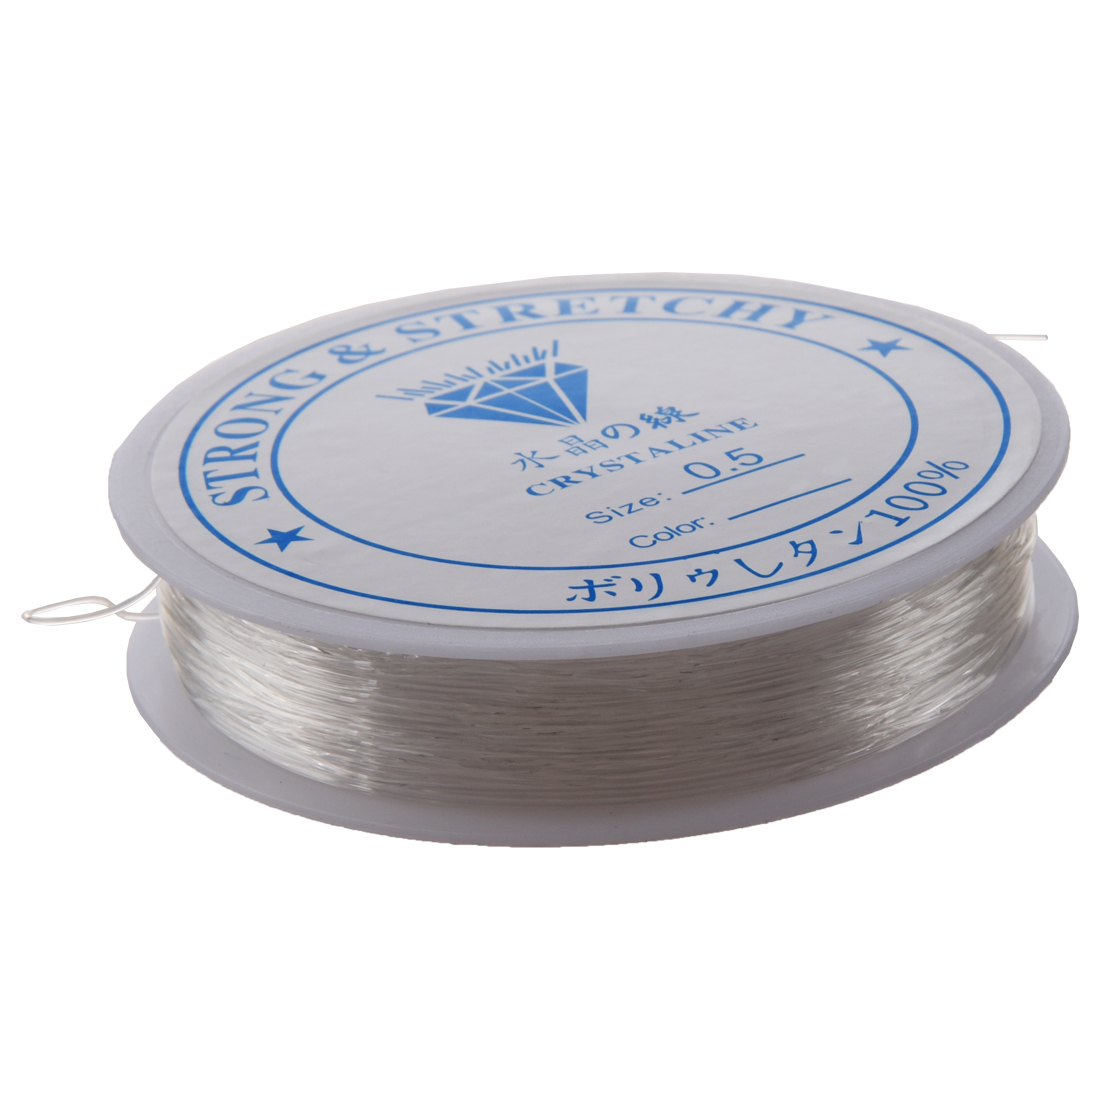 20 Meters Spool of Crystal Clear Strong Beading Thread Cord Wire Jewellery Making Stringing Necklaces Bracelets 0.5mm